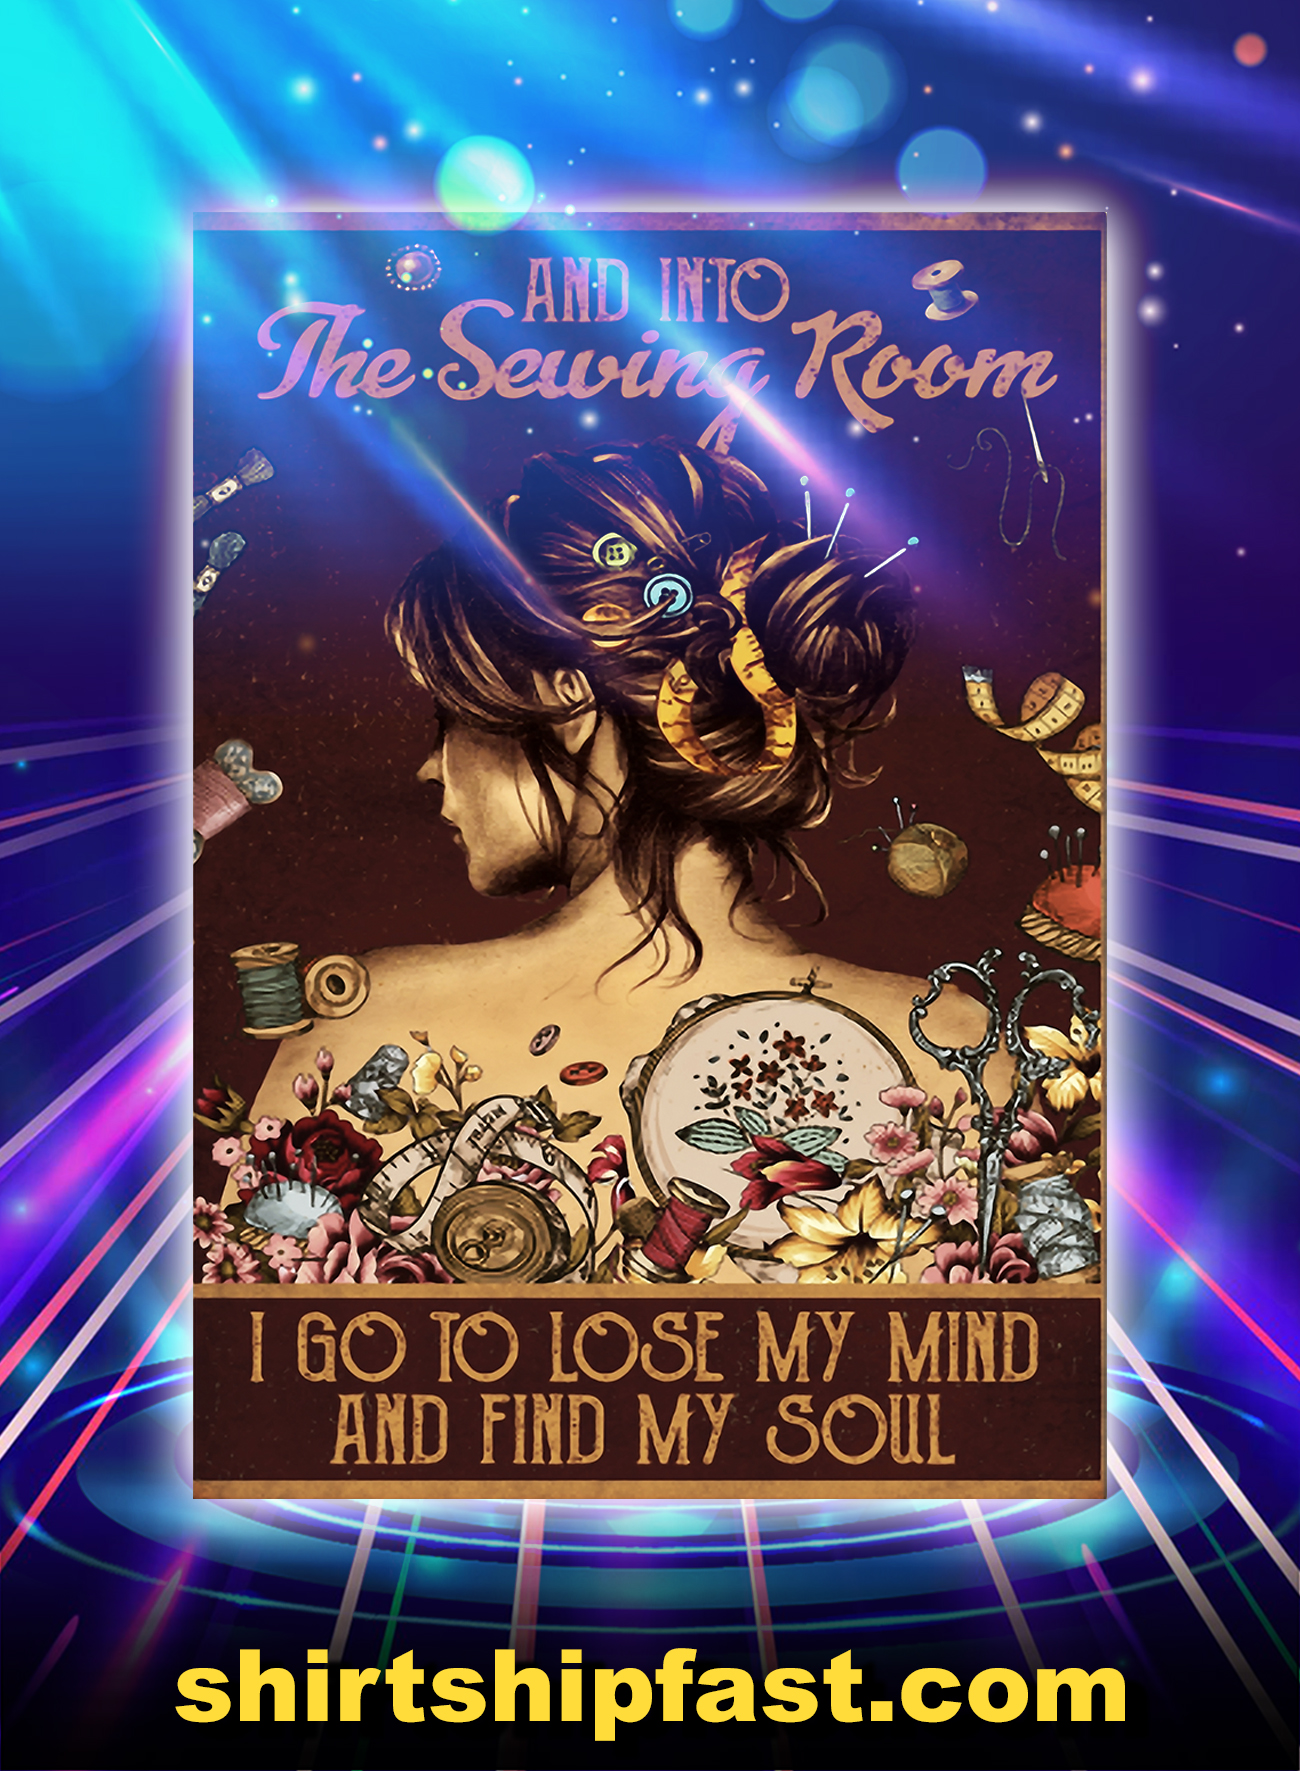 Girl and into the sewing room i go to lose my mind and find my soul poster - A4